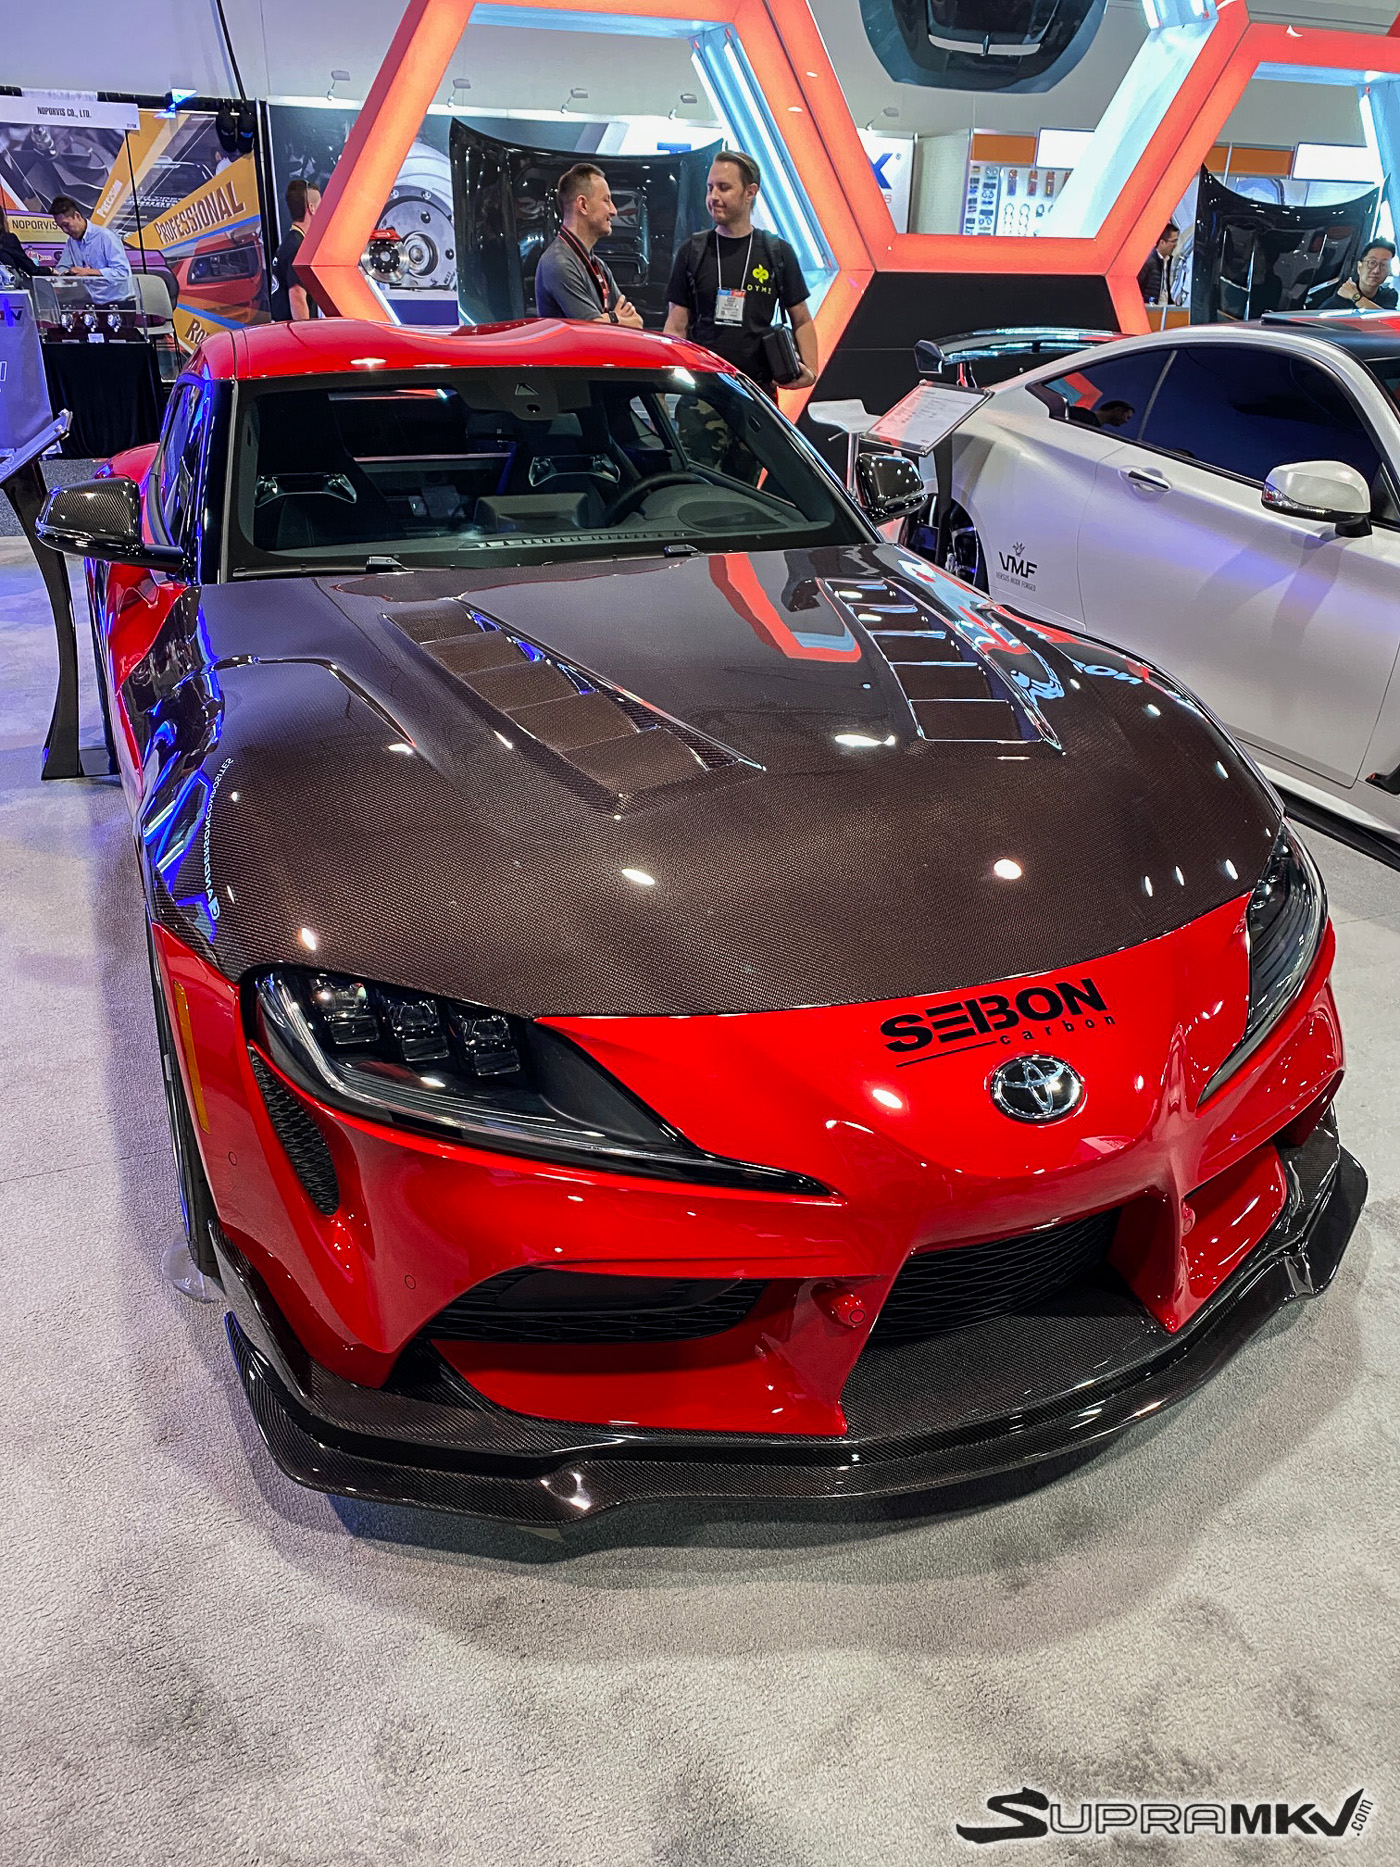 Seibon-Carbon-Supra-MKV-Build-SEMA-2019-2.jpg